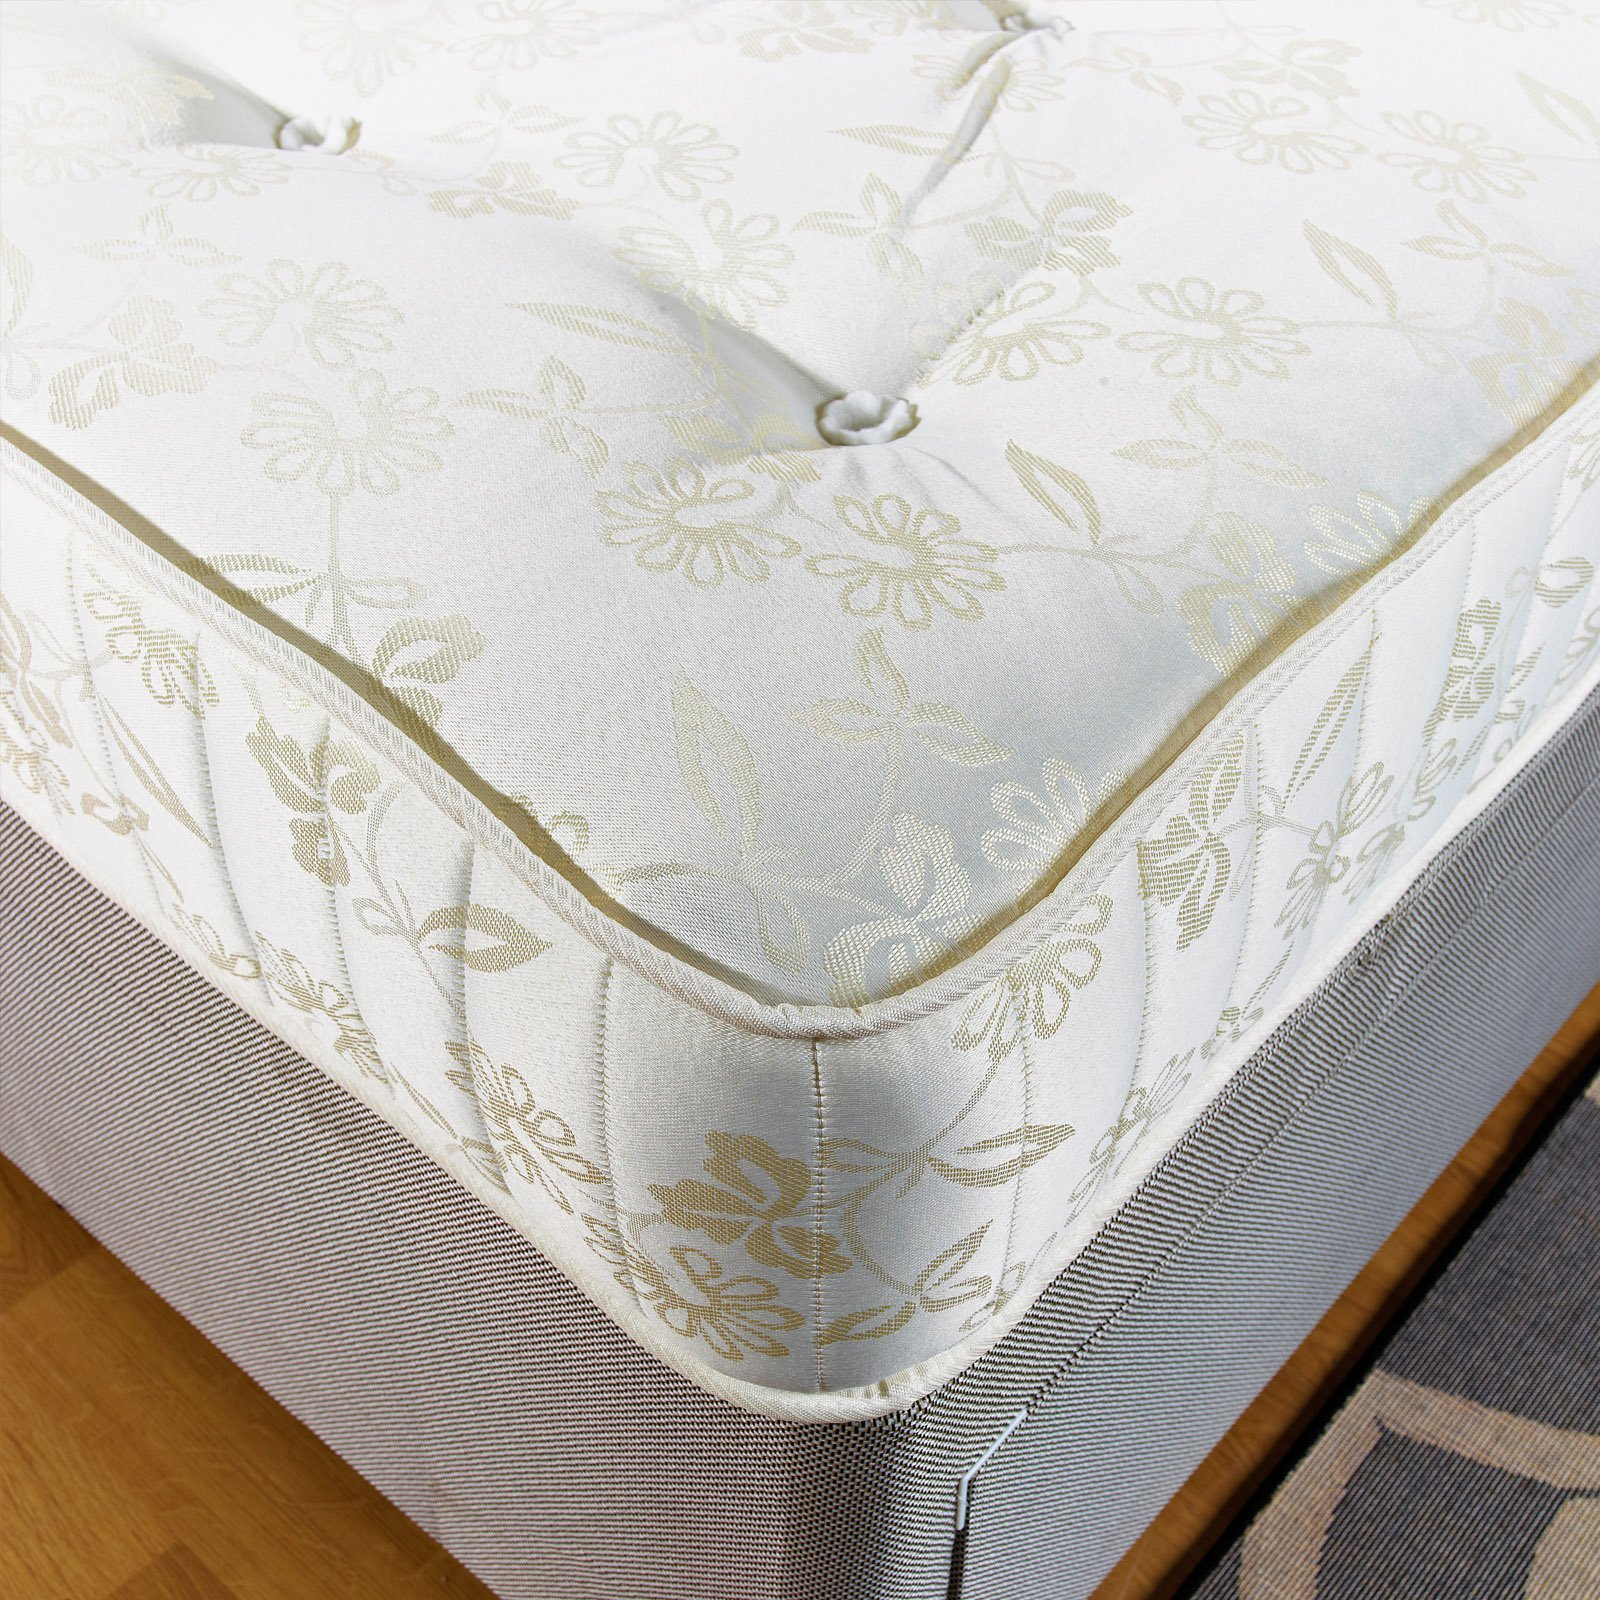 image-Hf4you Crystal Open Coil Orthopaedic Mattress